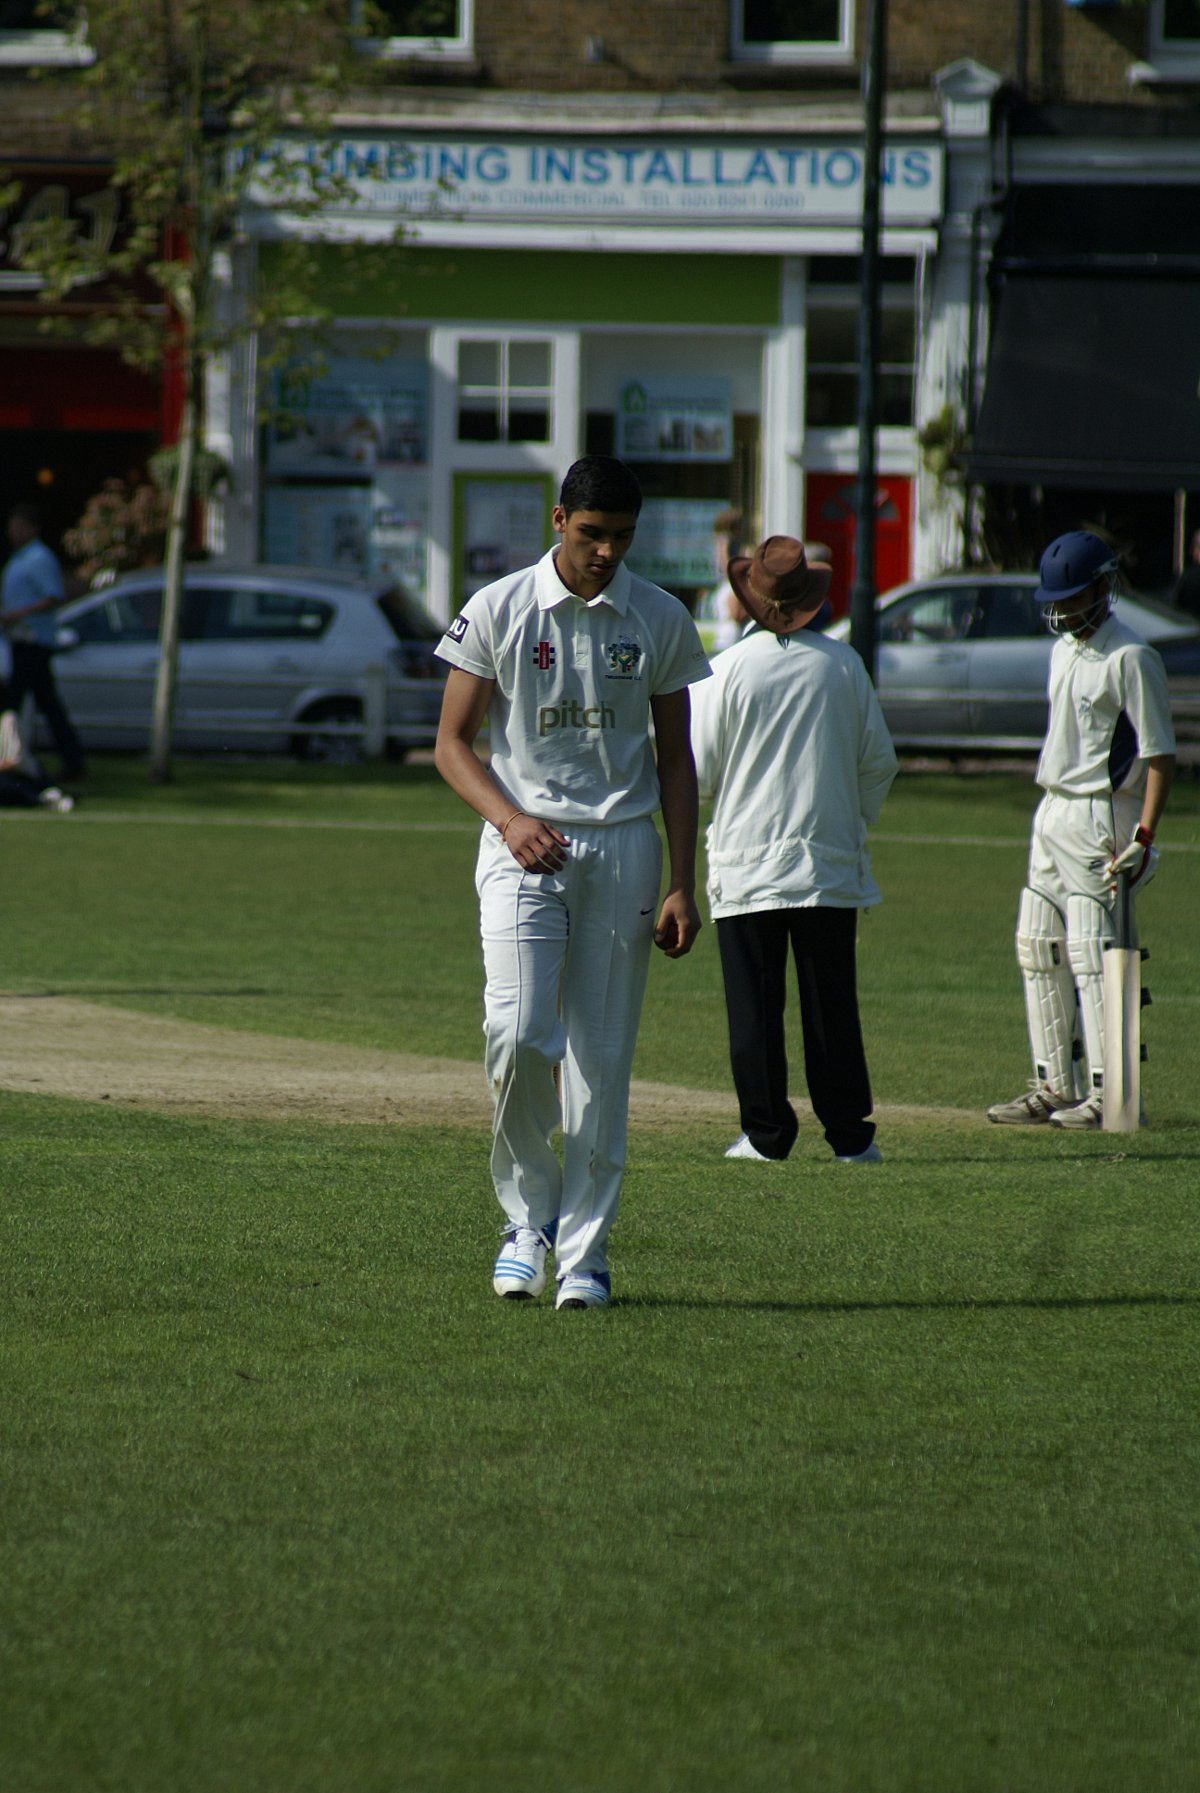 Rising star: Seamer Arunjit Sandhu, 17, is expected to line-up f